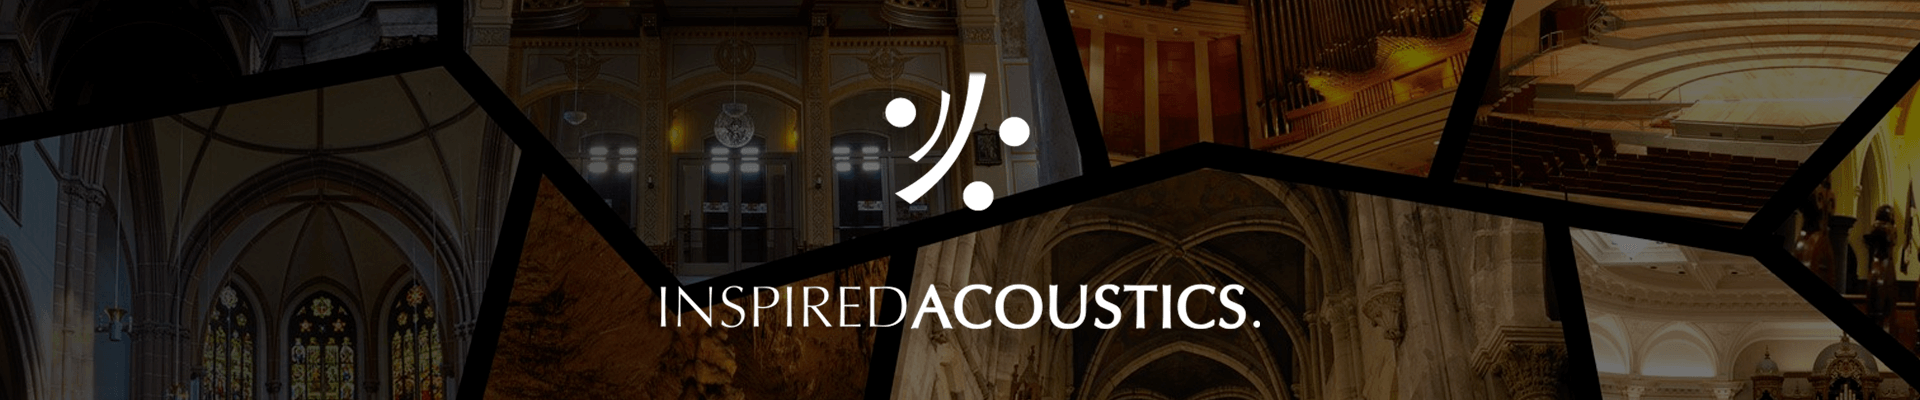 Inspired Acoustics